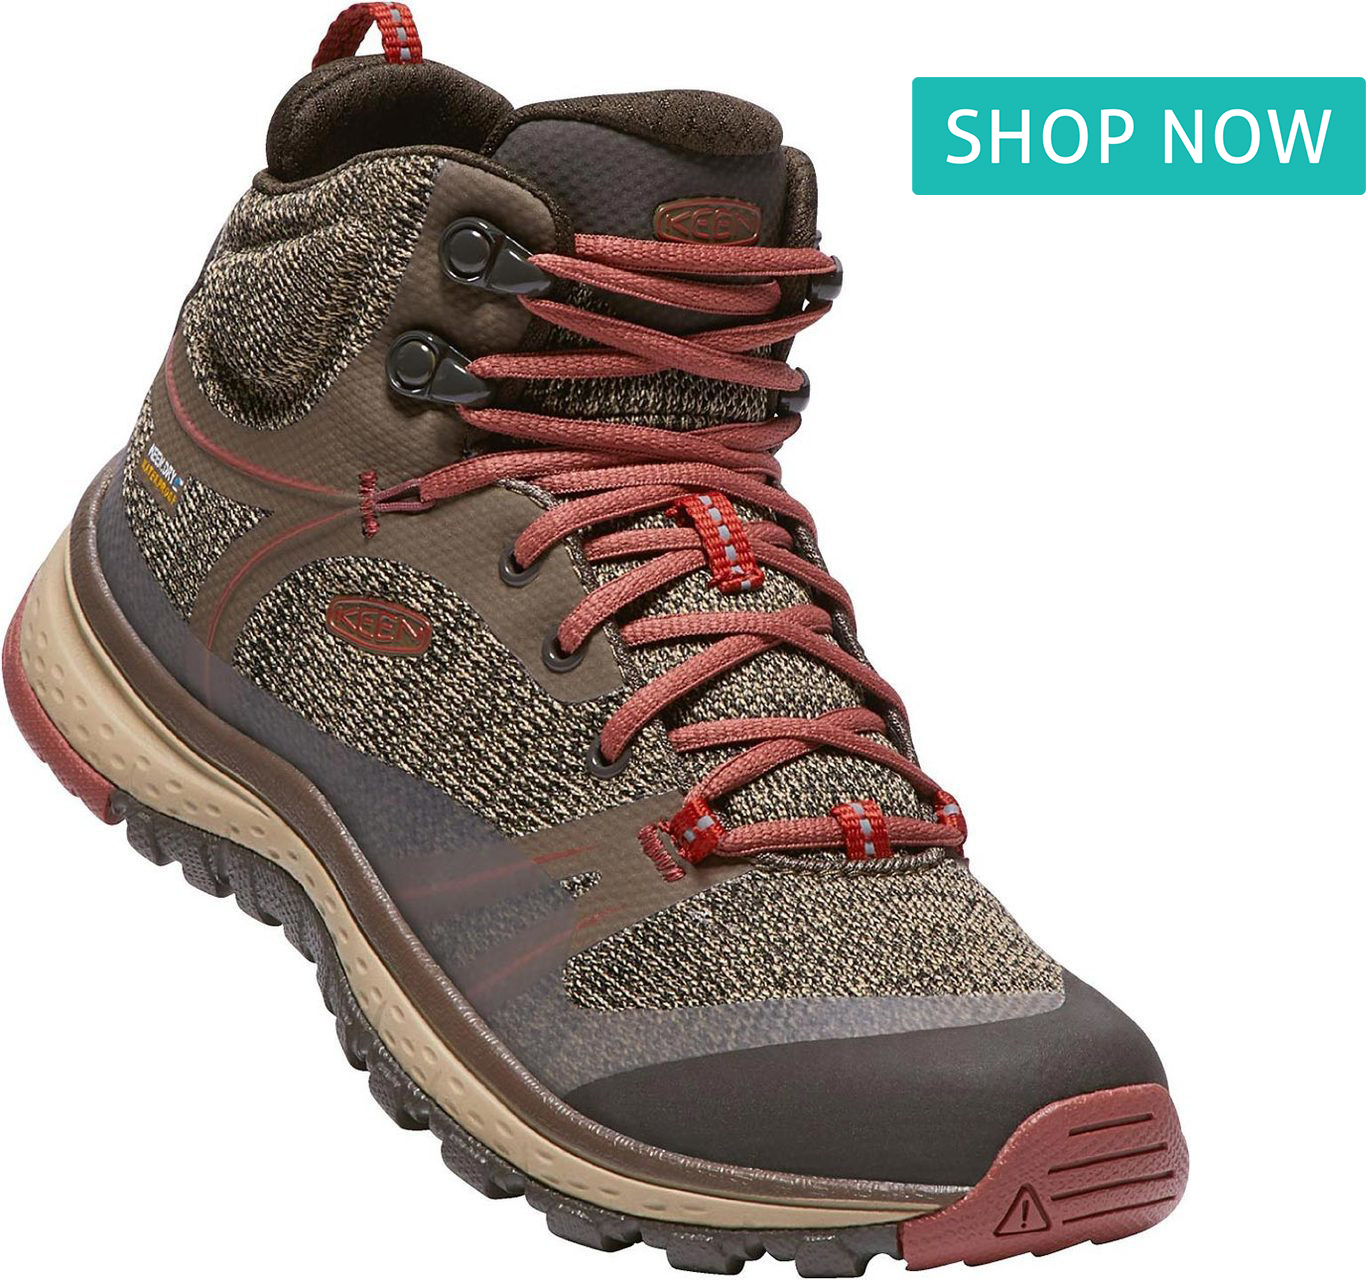 d77597b367a Should You Wear Trail Runners or Hiking Boots? - Englin's Fine Footwear